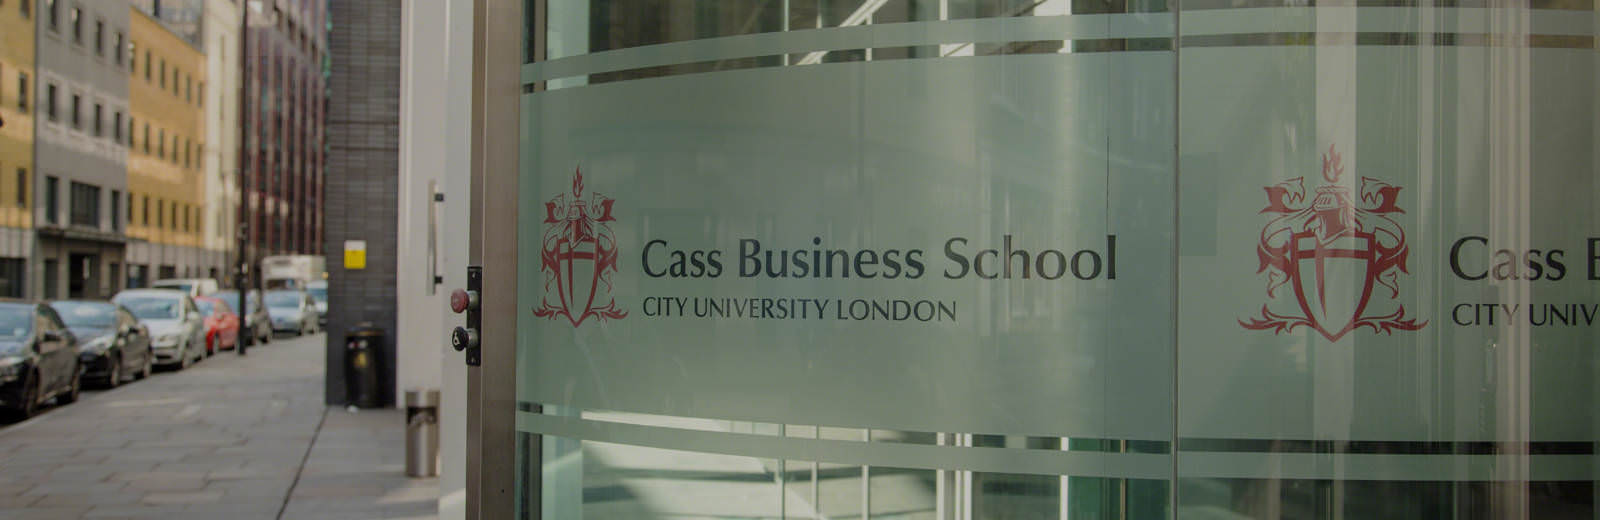 Cass Business School Student Room